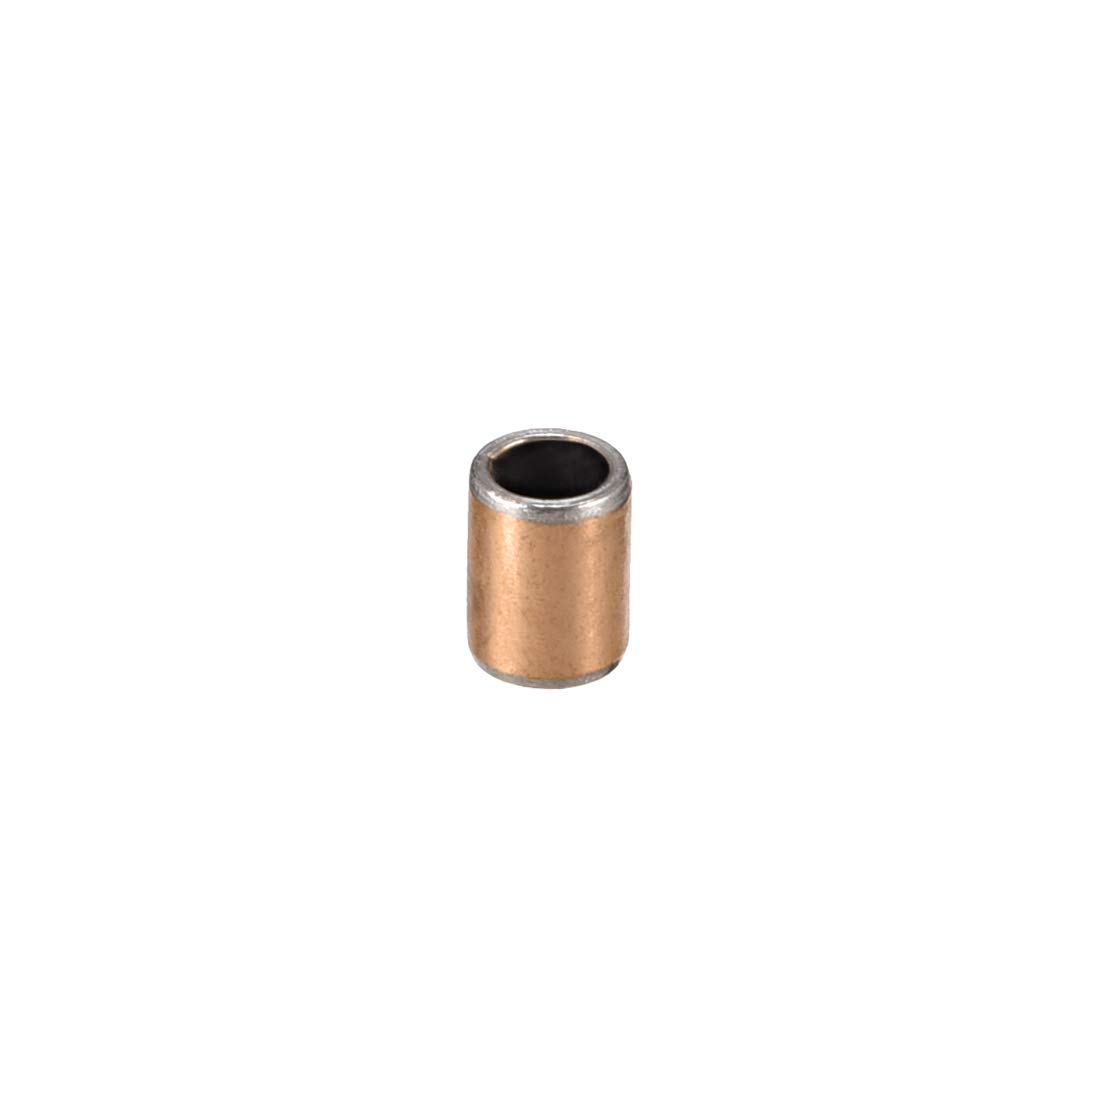 sourcing map Sleeve Bearing 3mm Bore x 5mm OD x 5mm Length Plain Bearings Wrapped Oilless Bushings Pack of 10